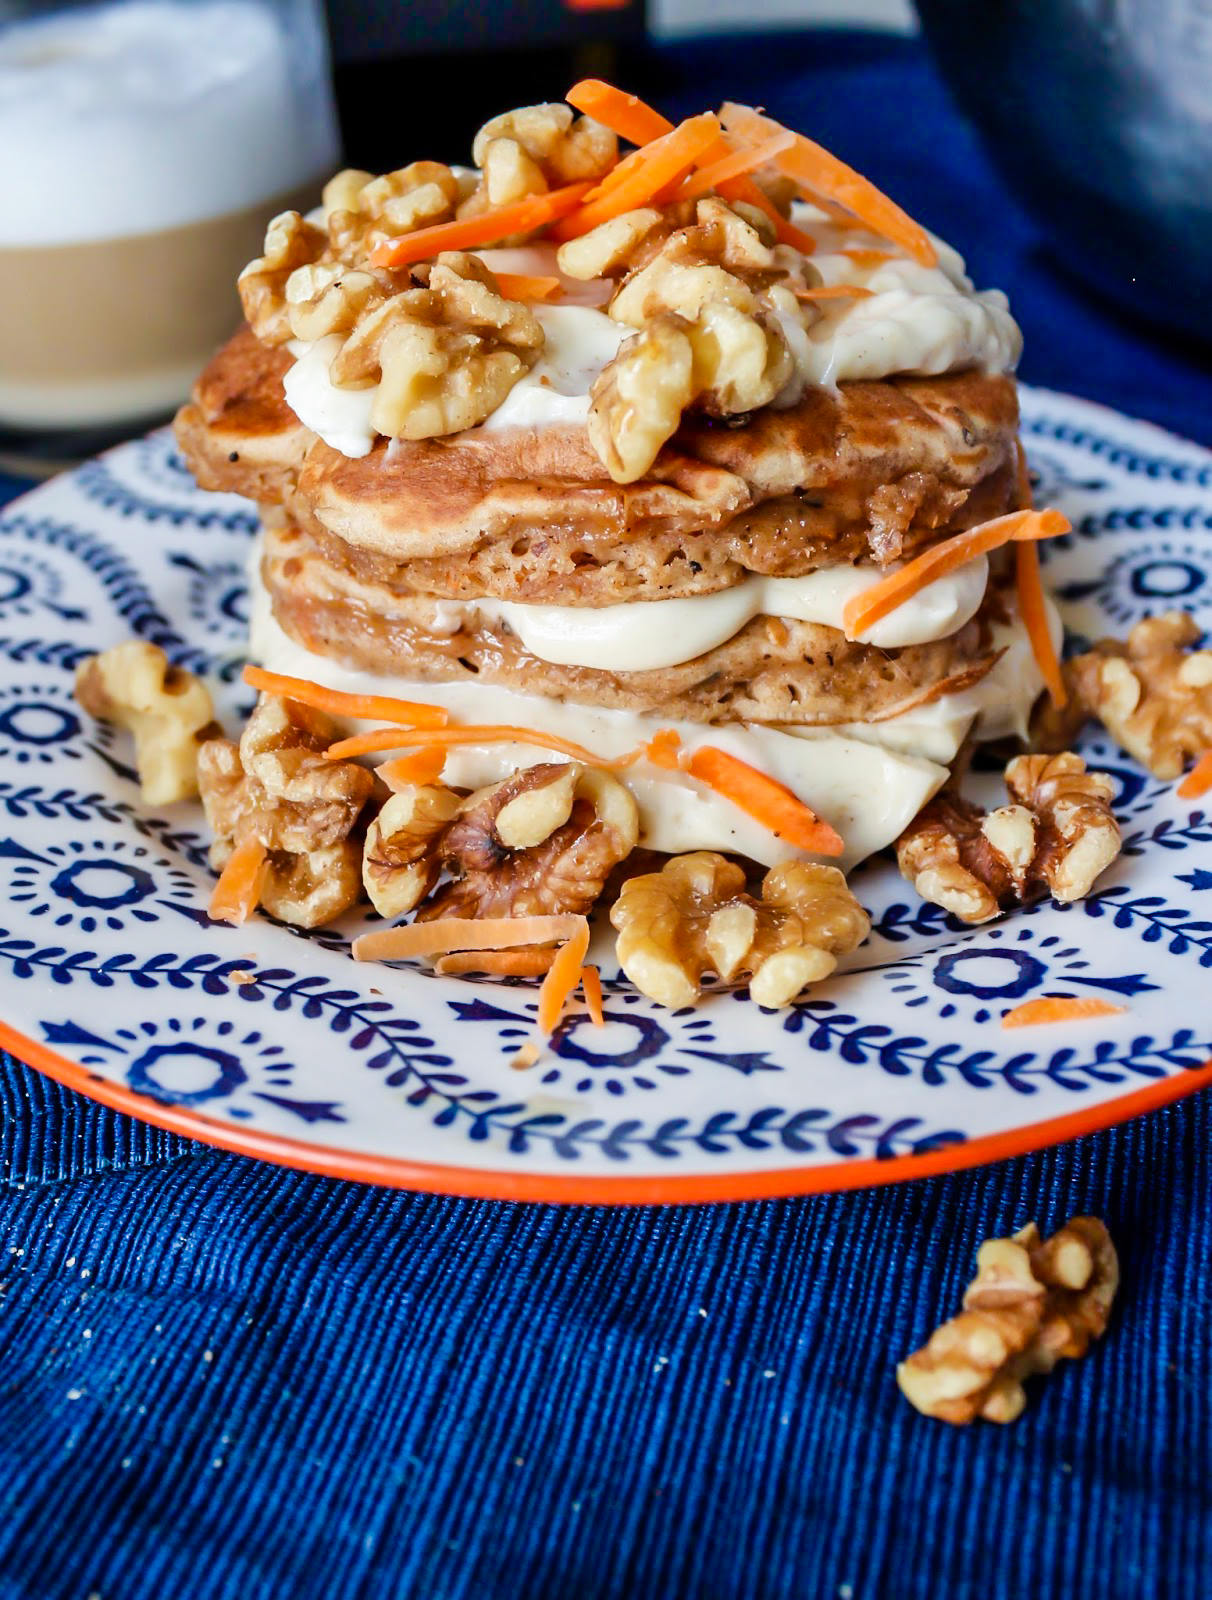 Carrot Cake Pancakes // Carrot Cake Recipes // Easy Carrot Cake Recipe // Carrot Cake Pancake Recipes // Easy Pancake Recipe // Maple Cream Cheese Frosting // Pancake Recipes For Brunch // Top 5 Pancake Recipes